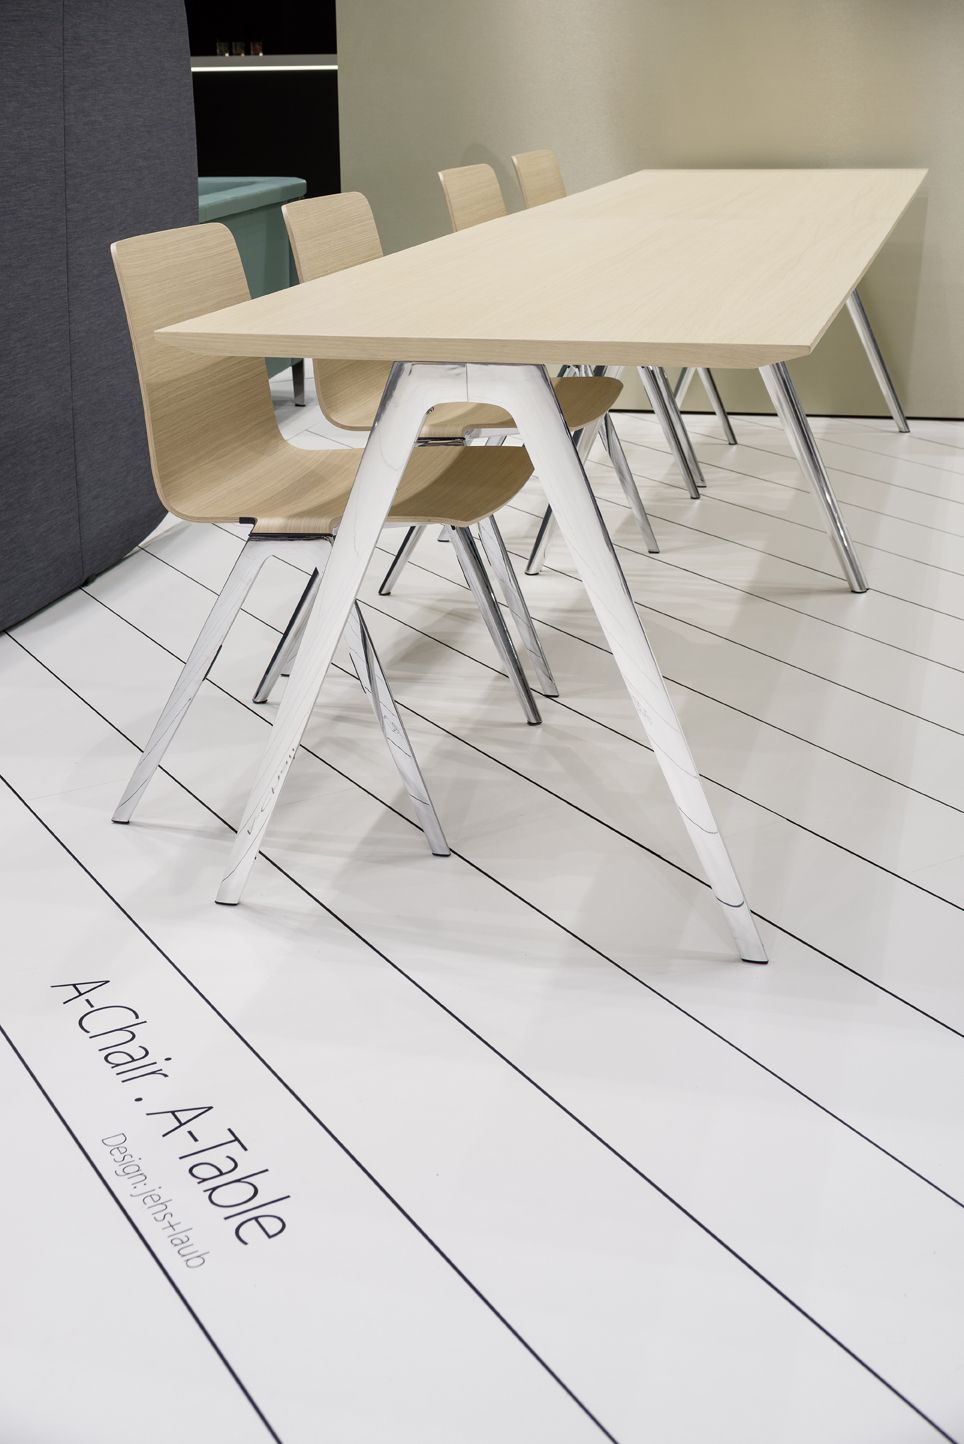 Brunner A-Chair & A-Table at Orgatec 2014 Cologne http://www.brunner ...